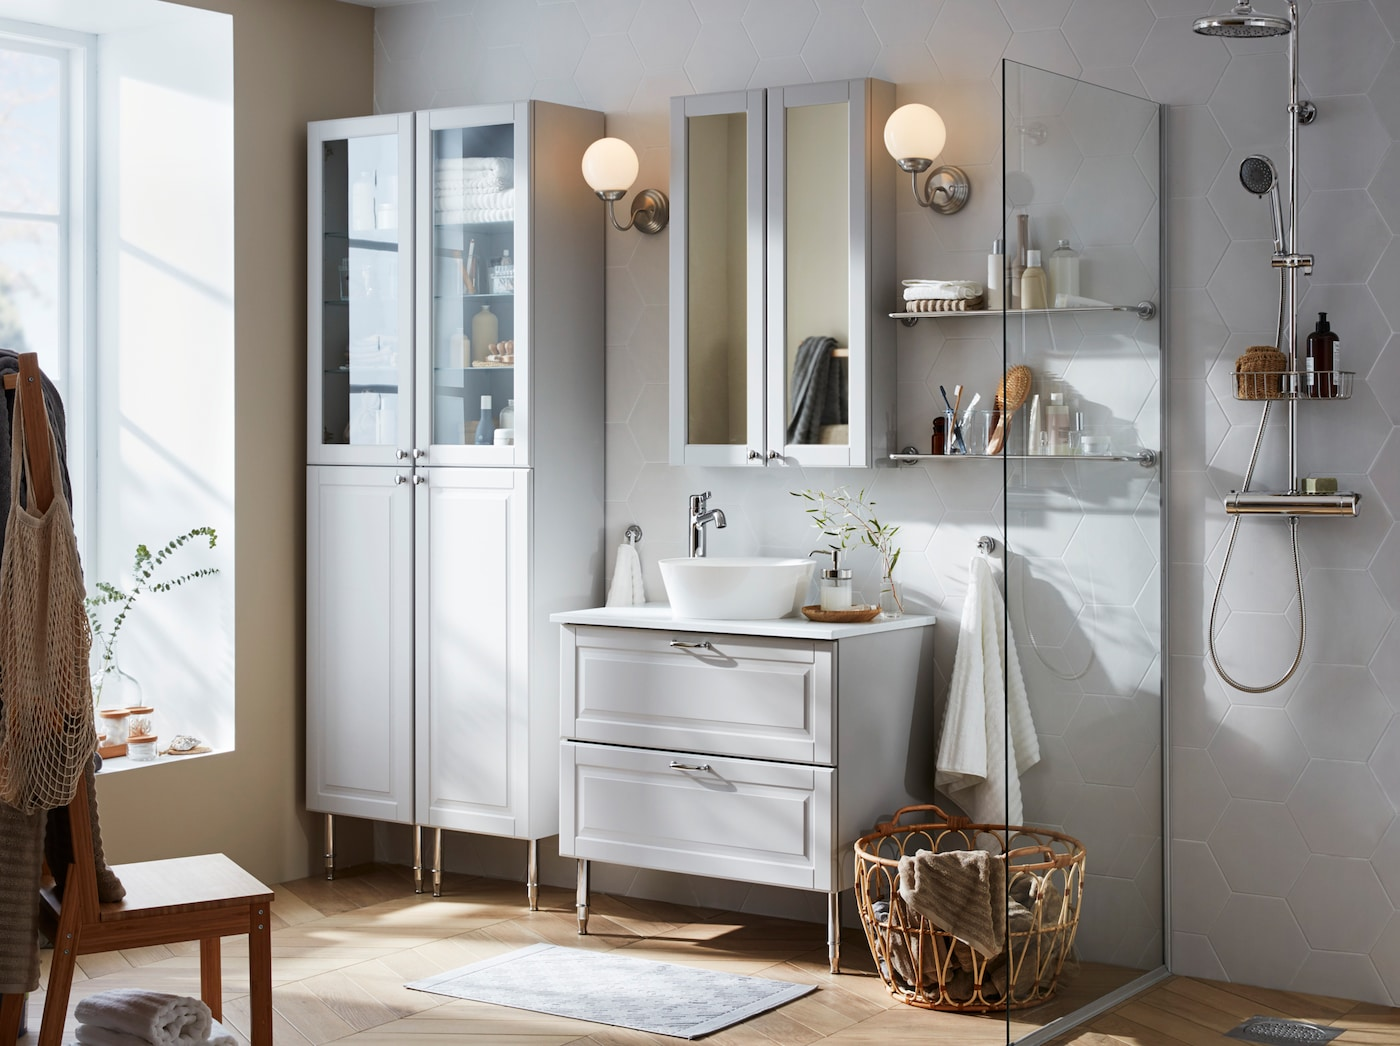 Organise your bathroom easily with IKEA GODMORGON furniture series. The white drawers come with fully extendable doors with a silent close function.